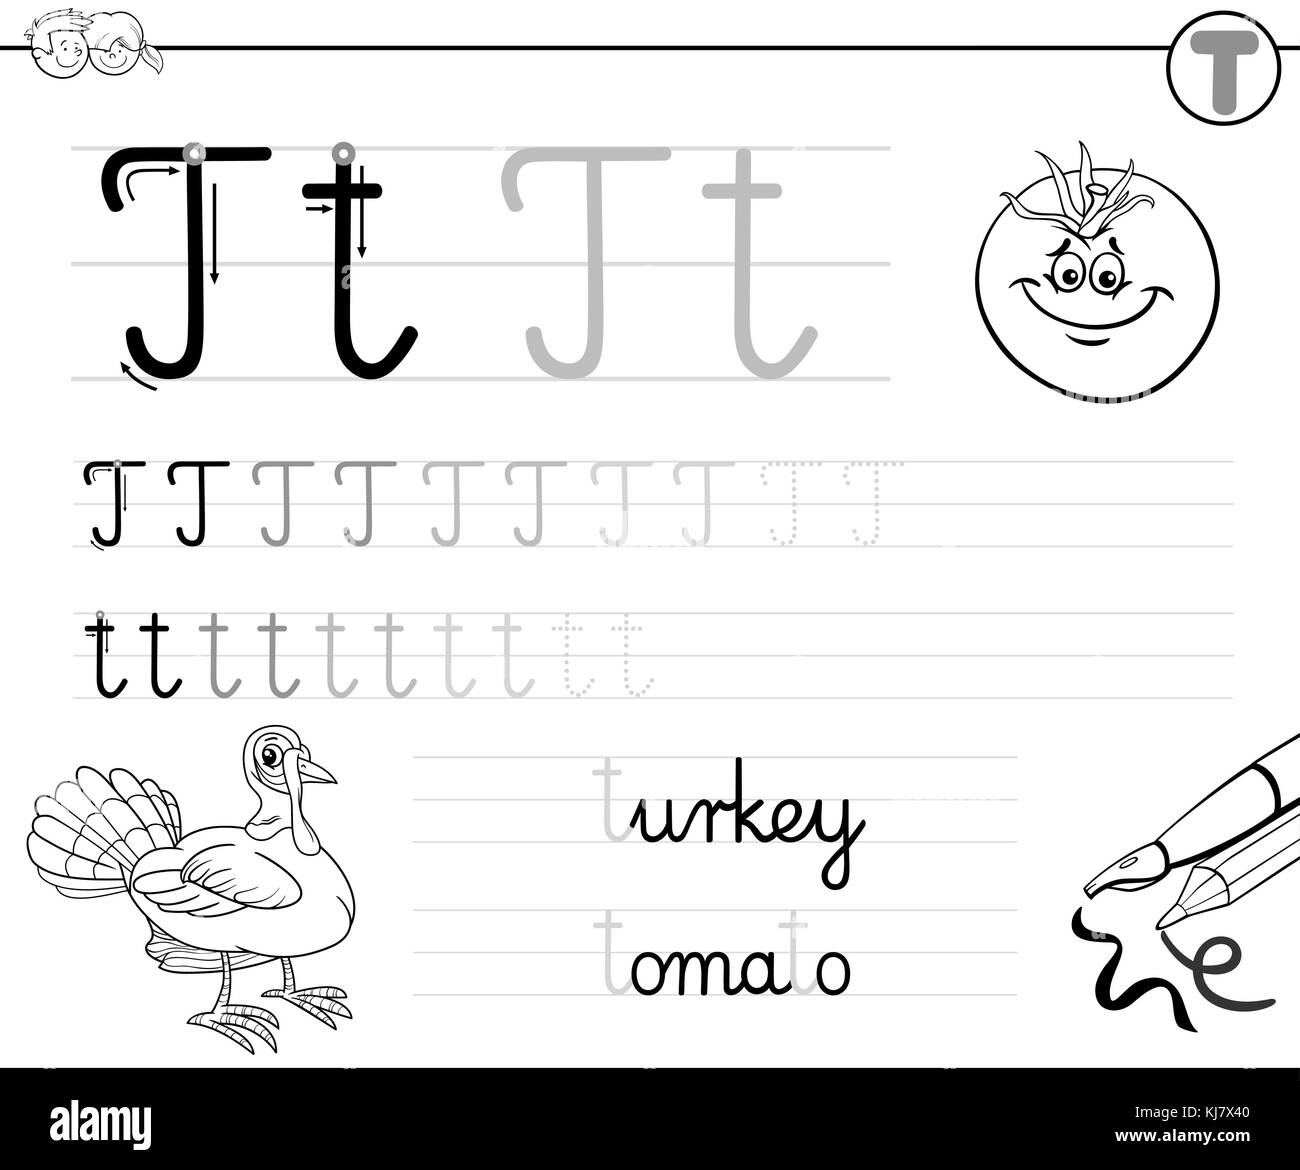 Coloring Alphabet For Kids Stock Photos Amp Coloring Alphabet For Kids Stock Images